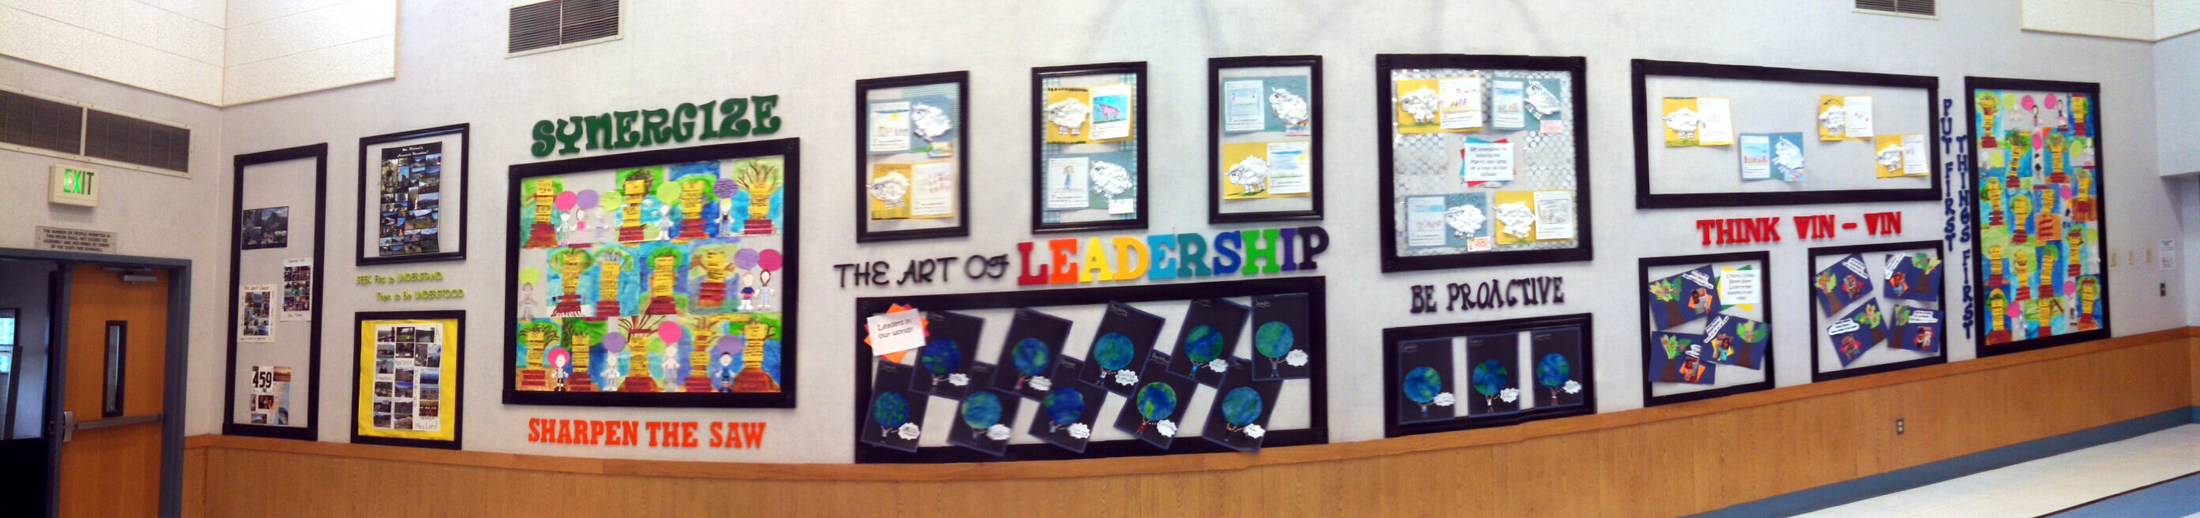 Art of Leadership Wall